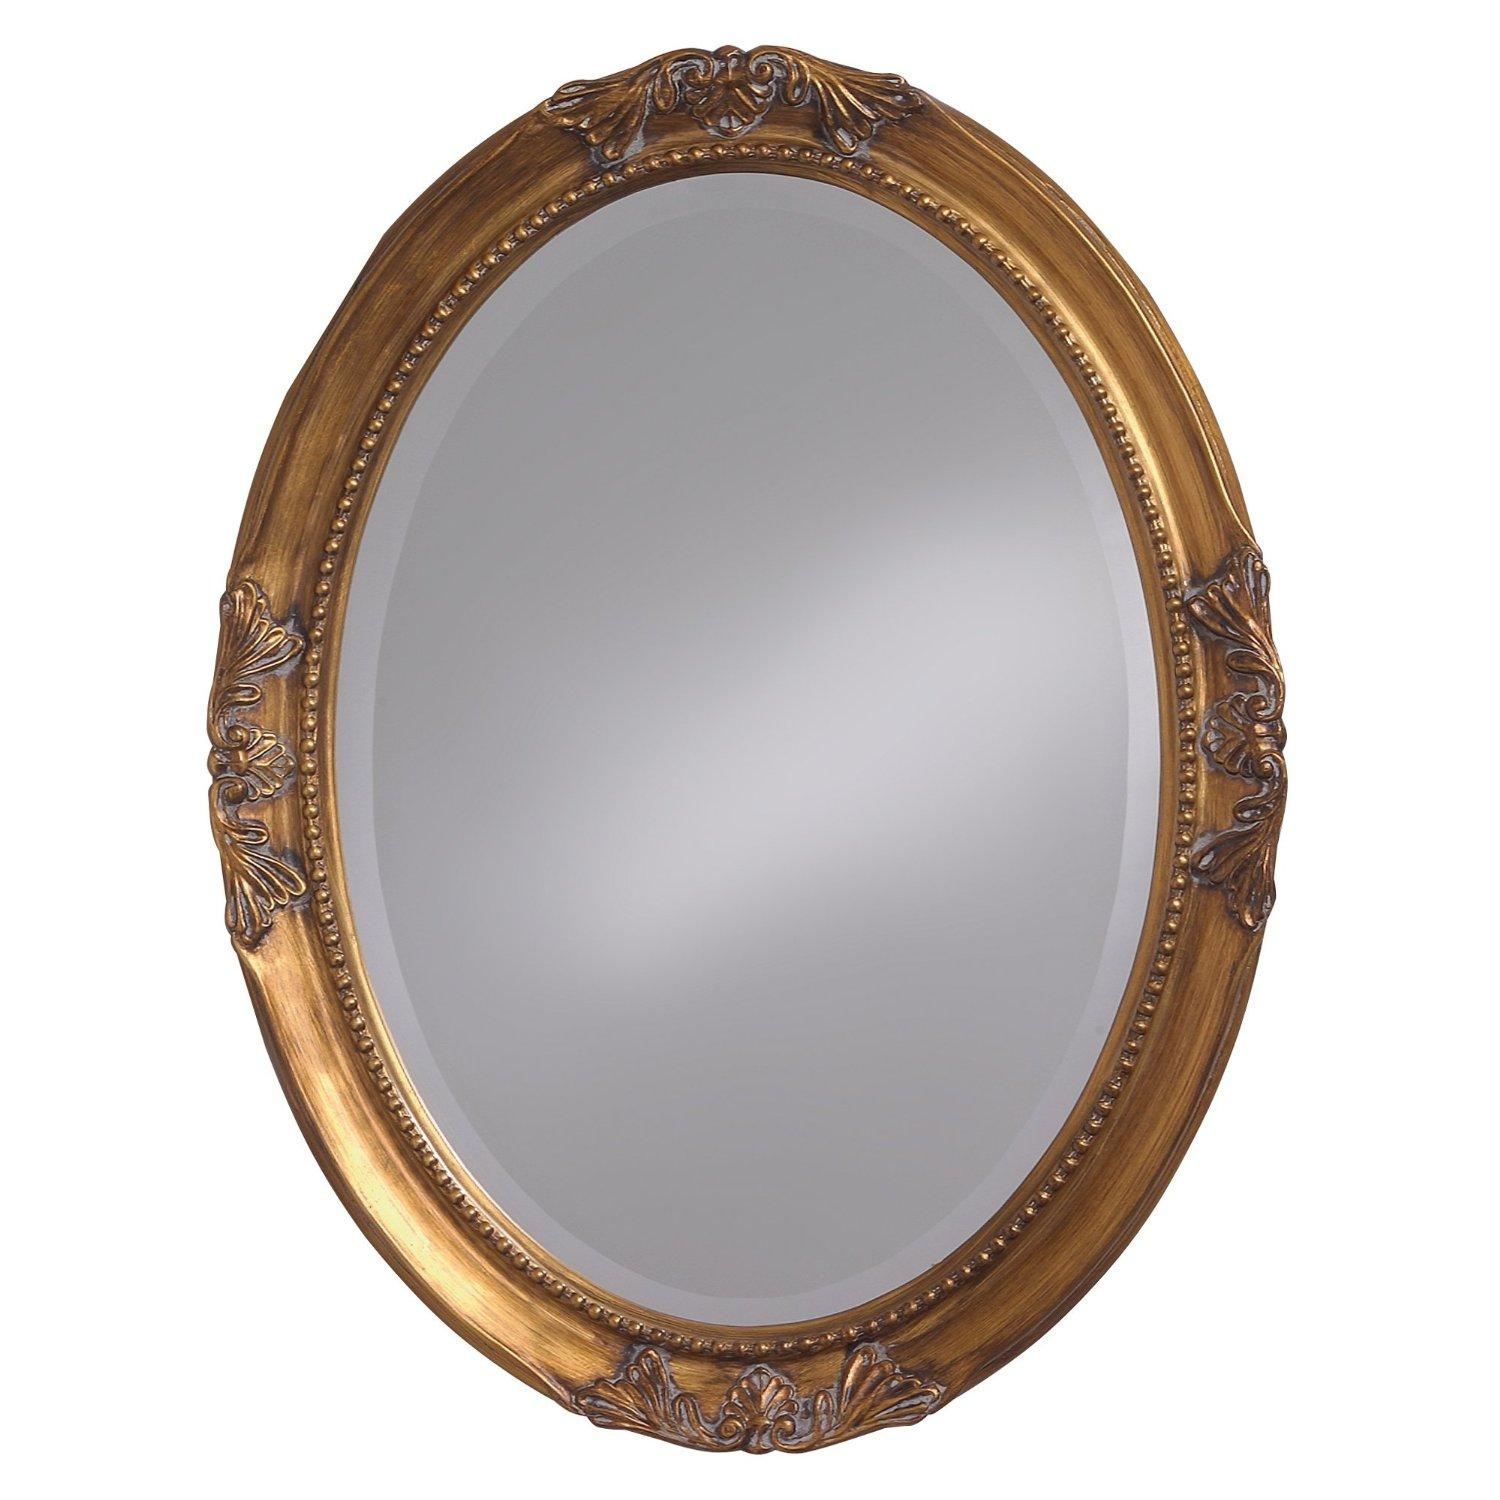 16 Ornate Mirrors For Your Home | Qosy With Gold Round Mirrors (Image 2 of 20)